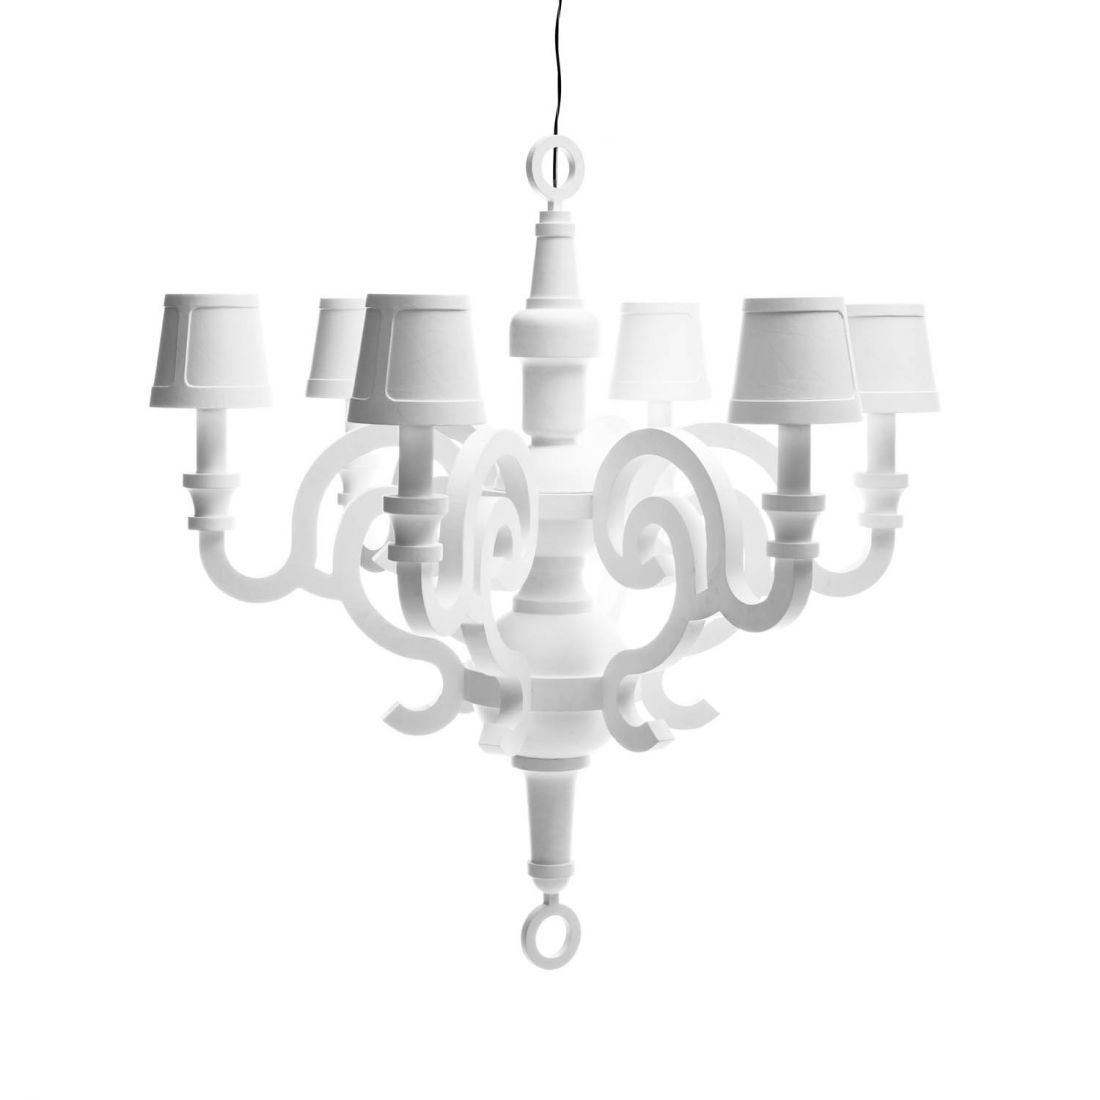 Paper chandelier XL Set de pantalla